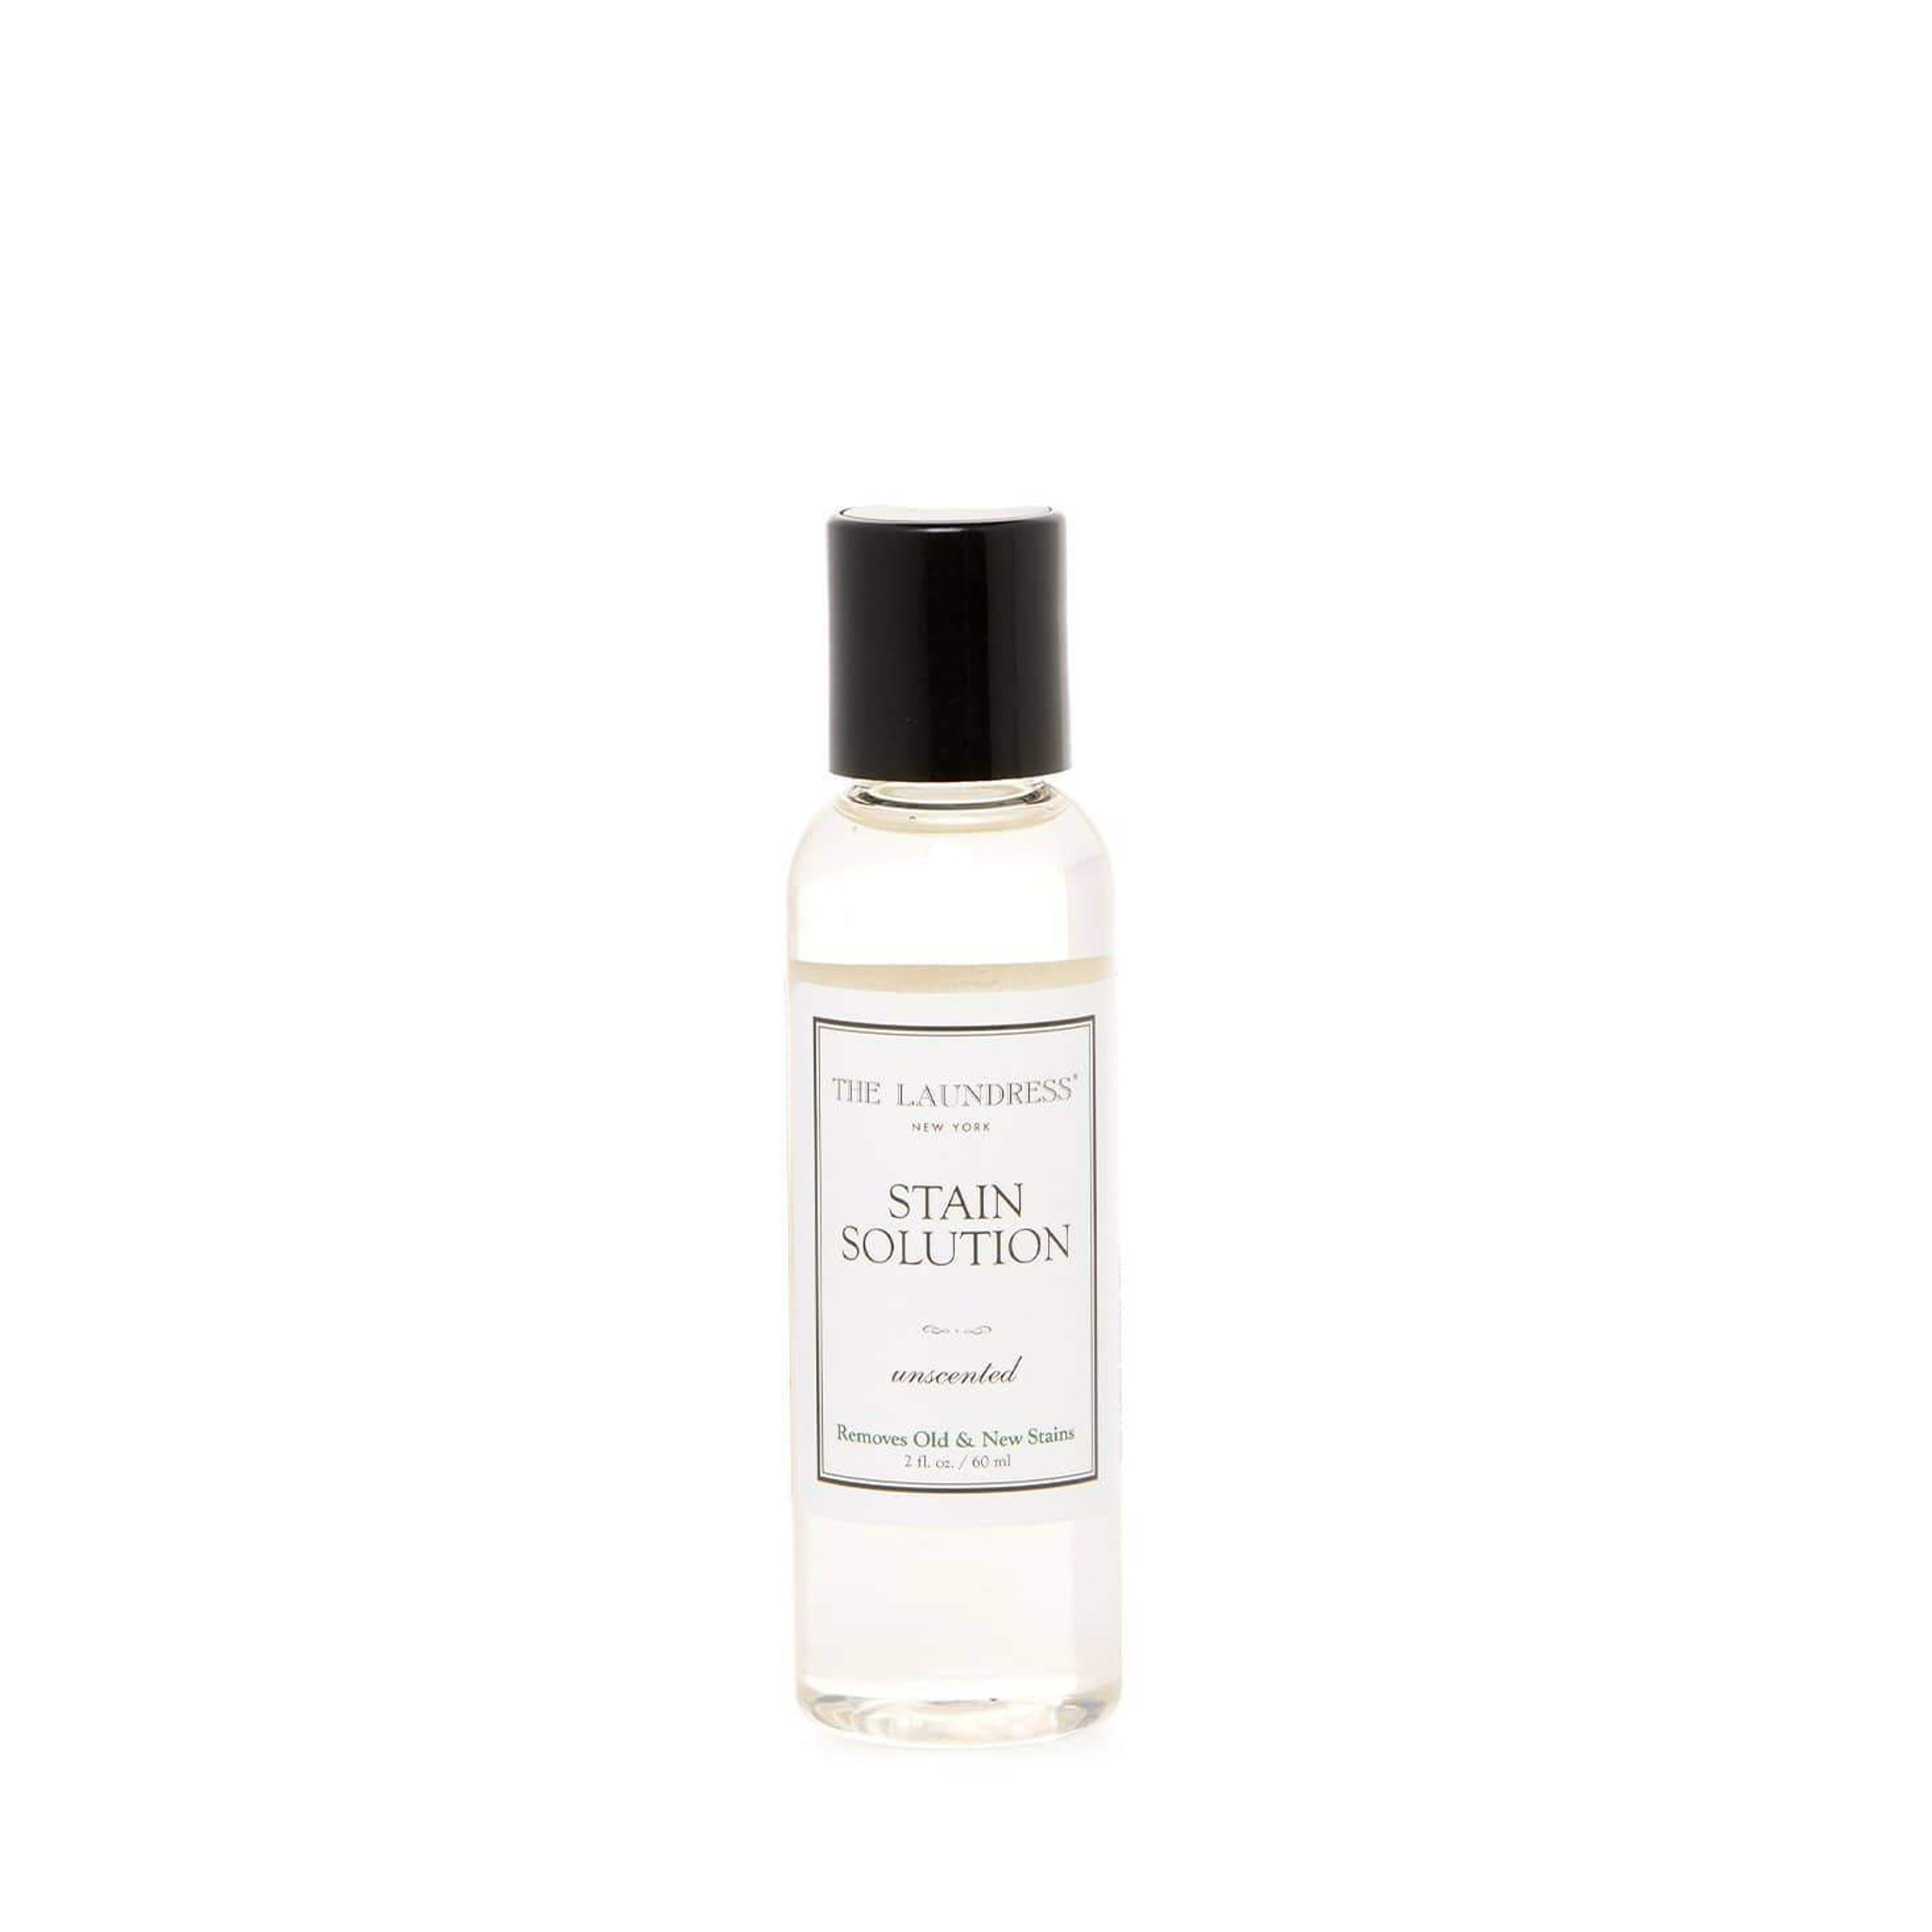 The Laundress - Stain Solution 60ml